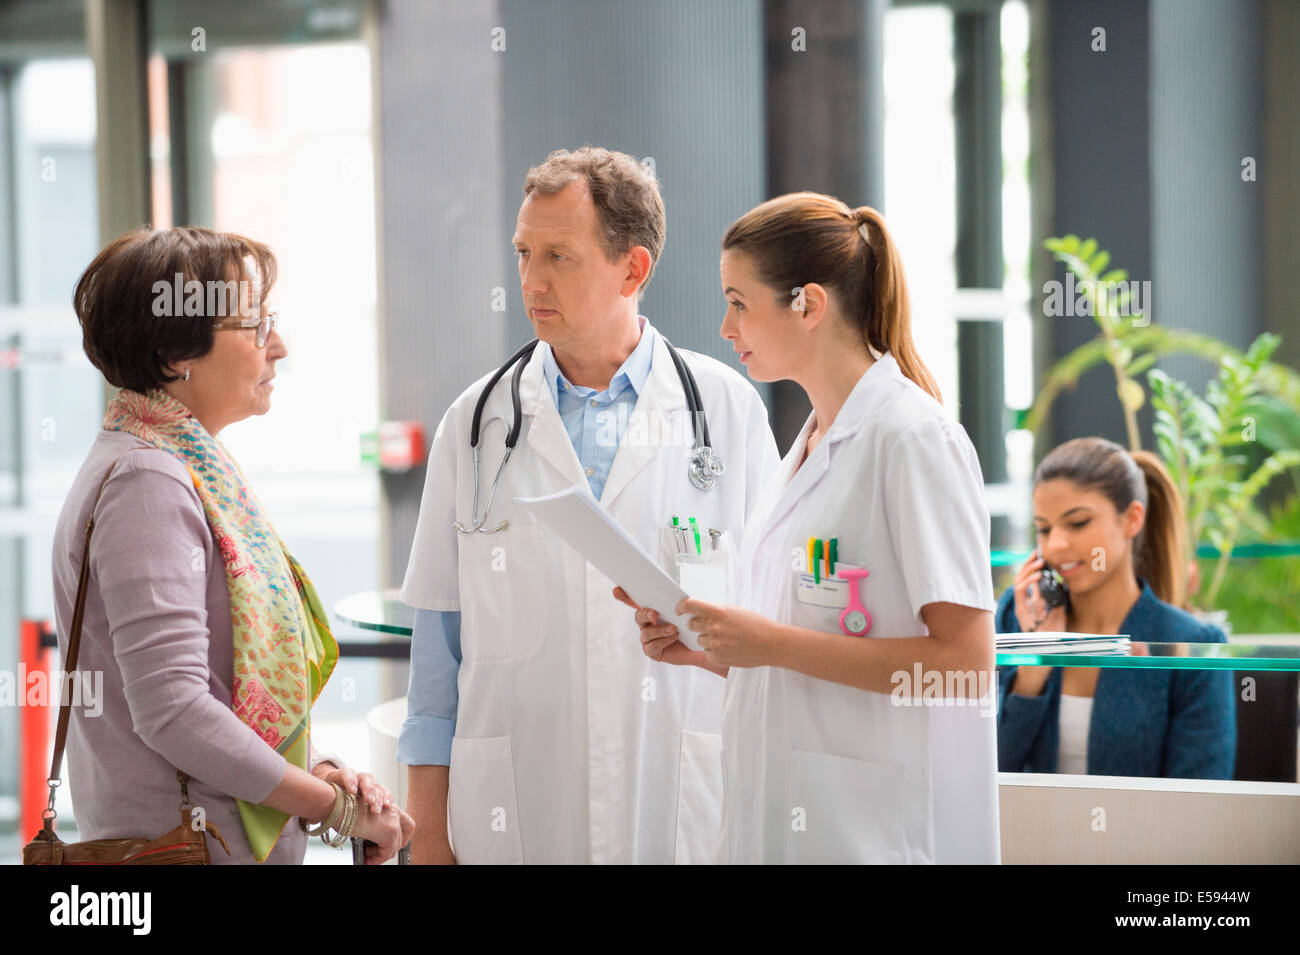 Doctors discussing with female patient at hospital/24 Banque D'Images